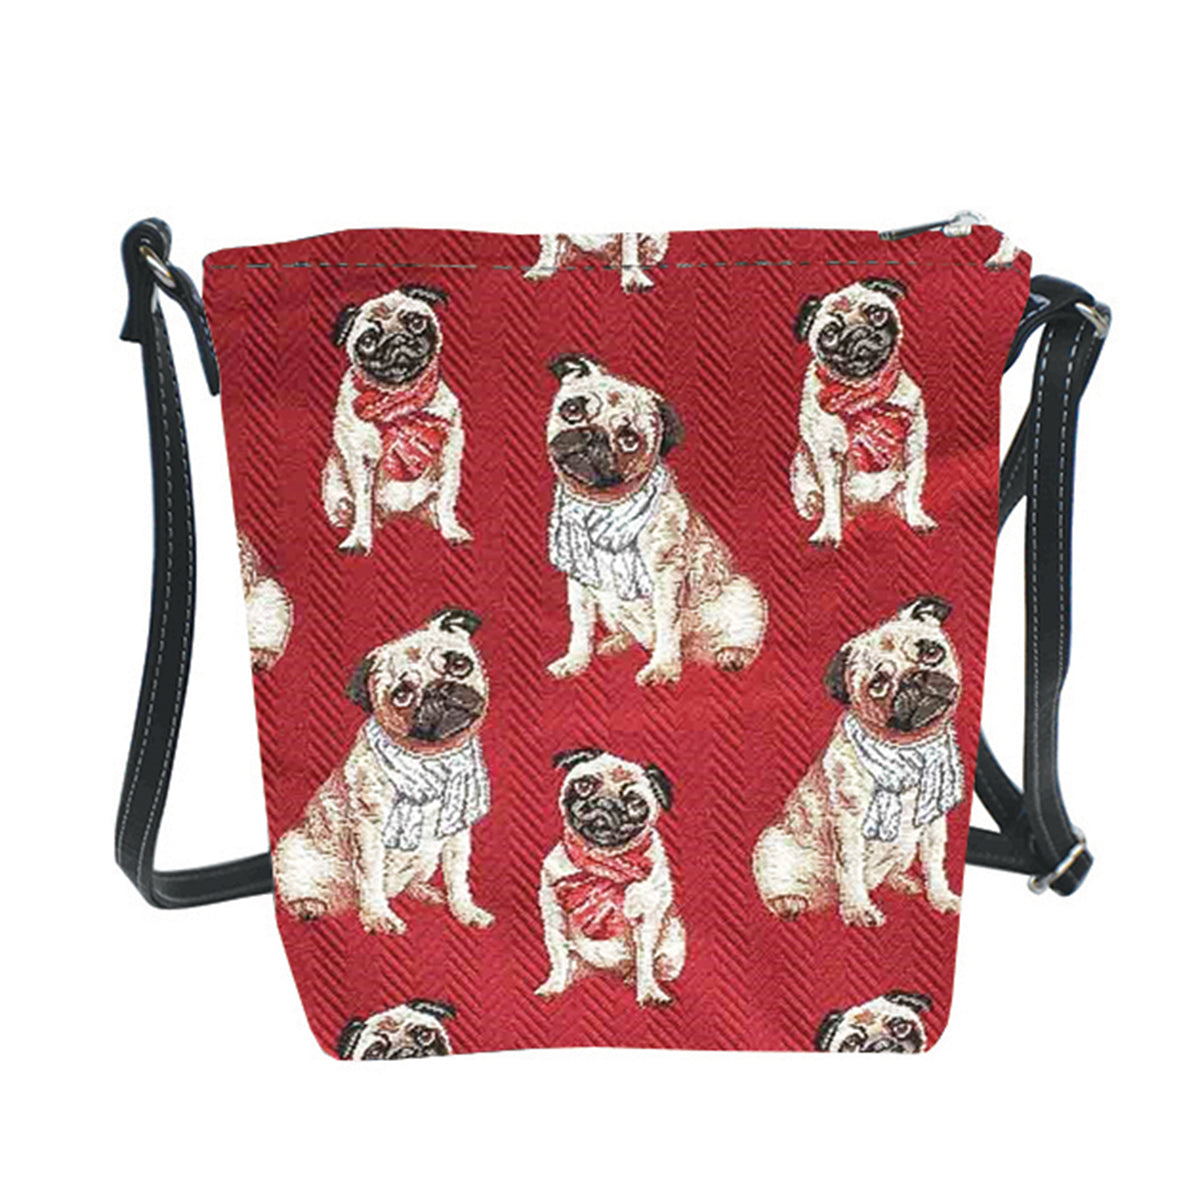 SLING-PUG | PUG DOG SLING BAG PURSE CROSSBODY - www.signareusa.com